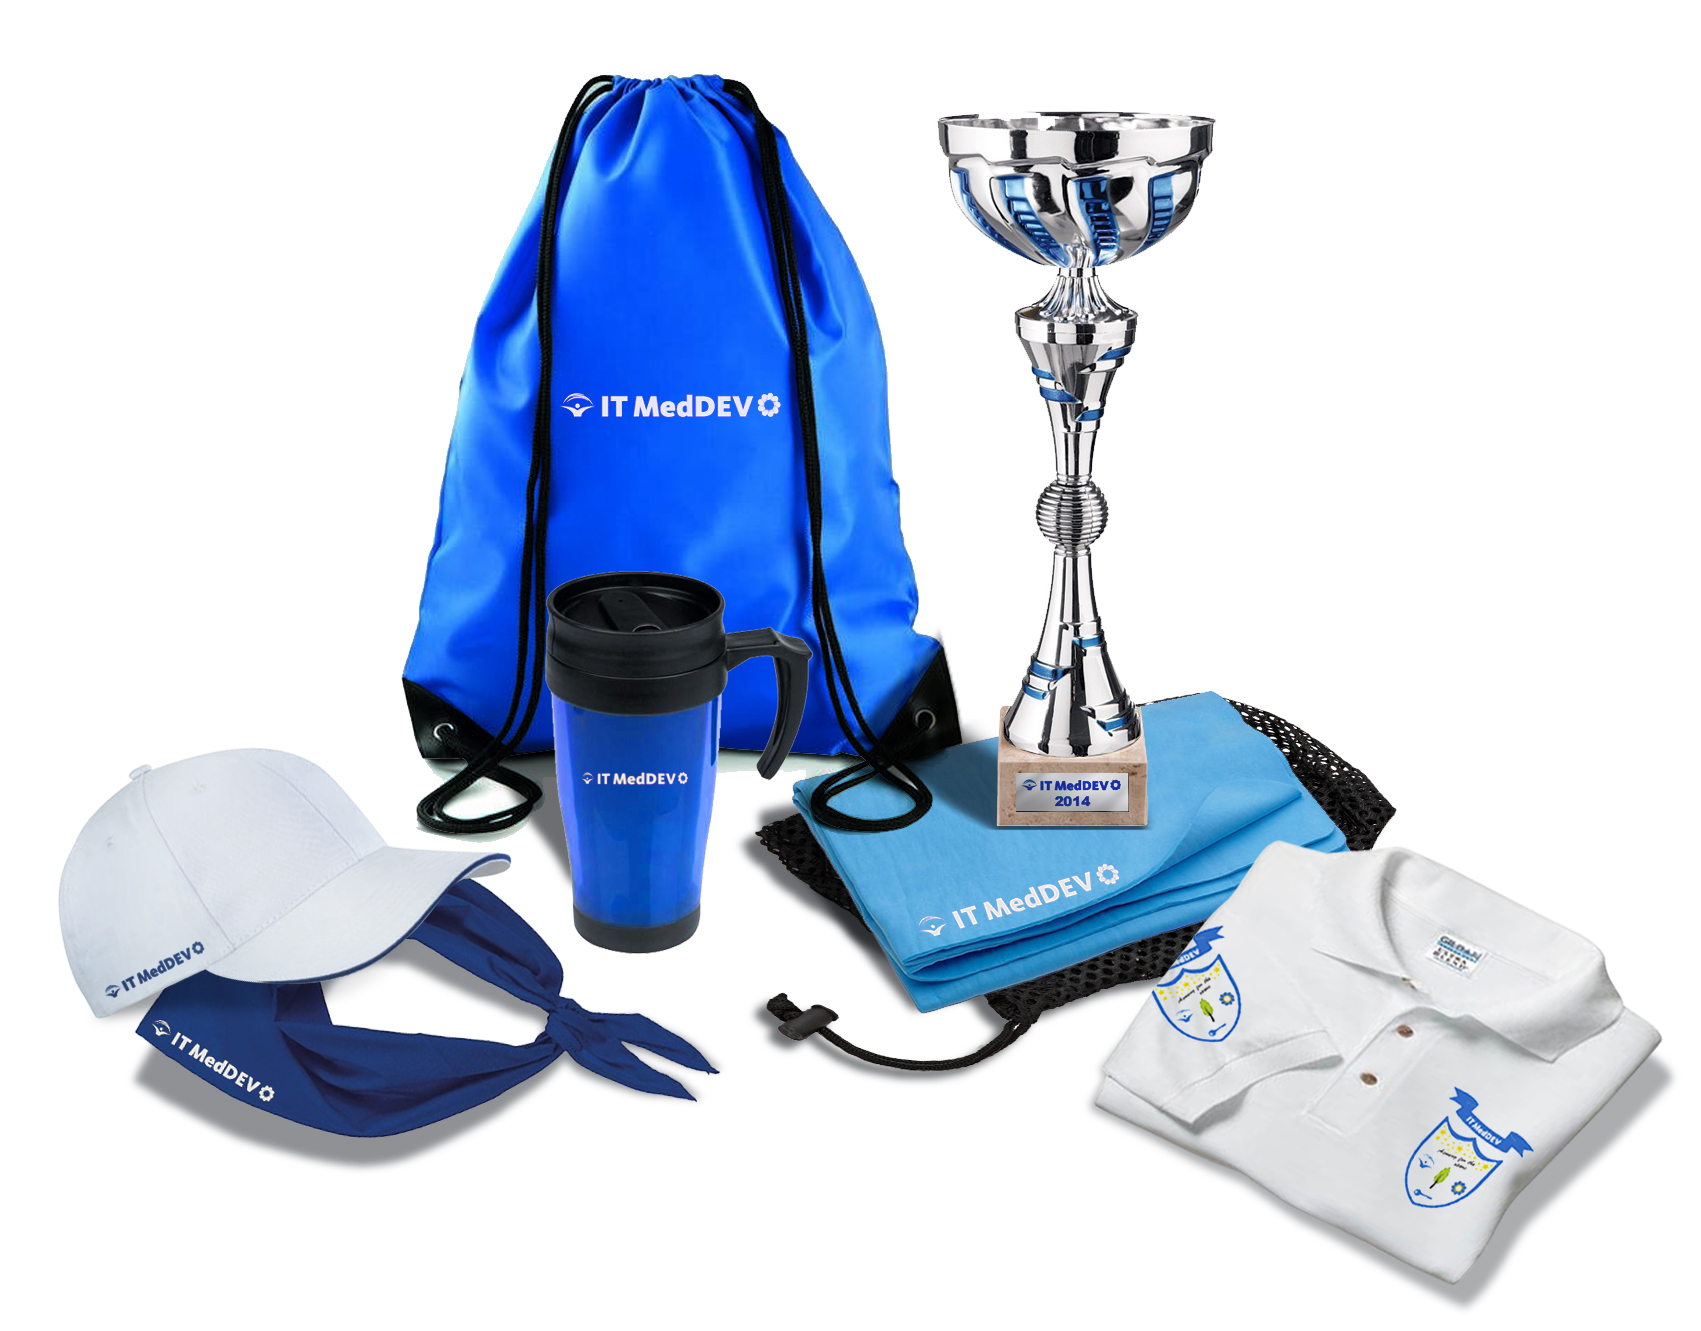 Corporate branding materials package for internal sportive activities support.